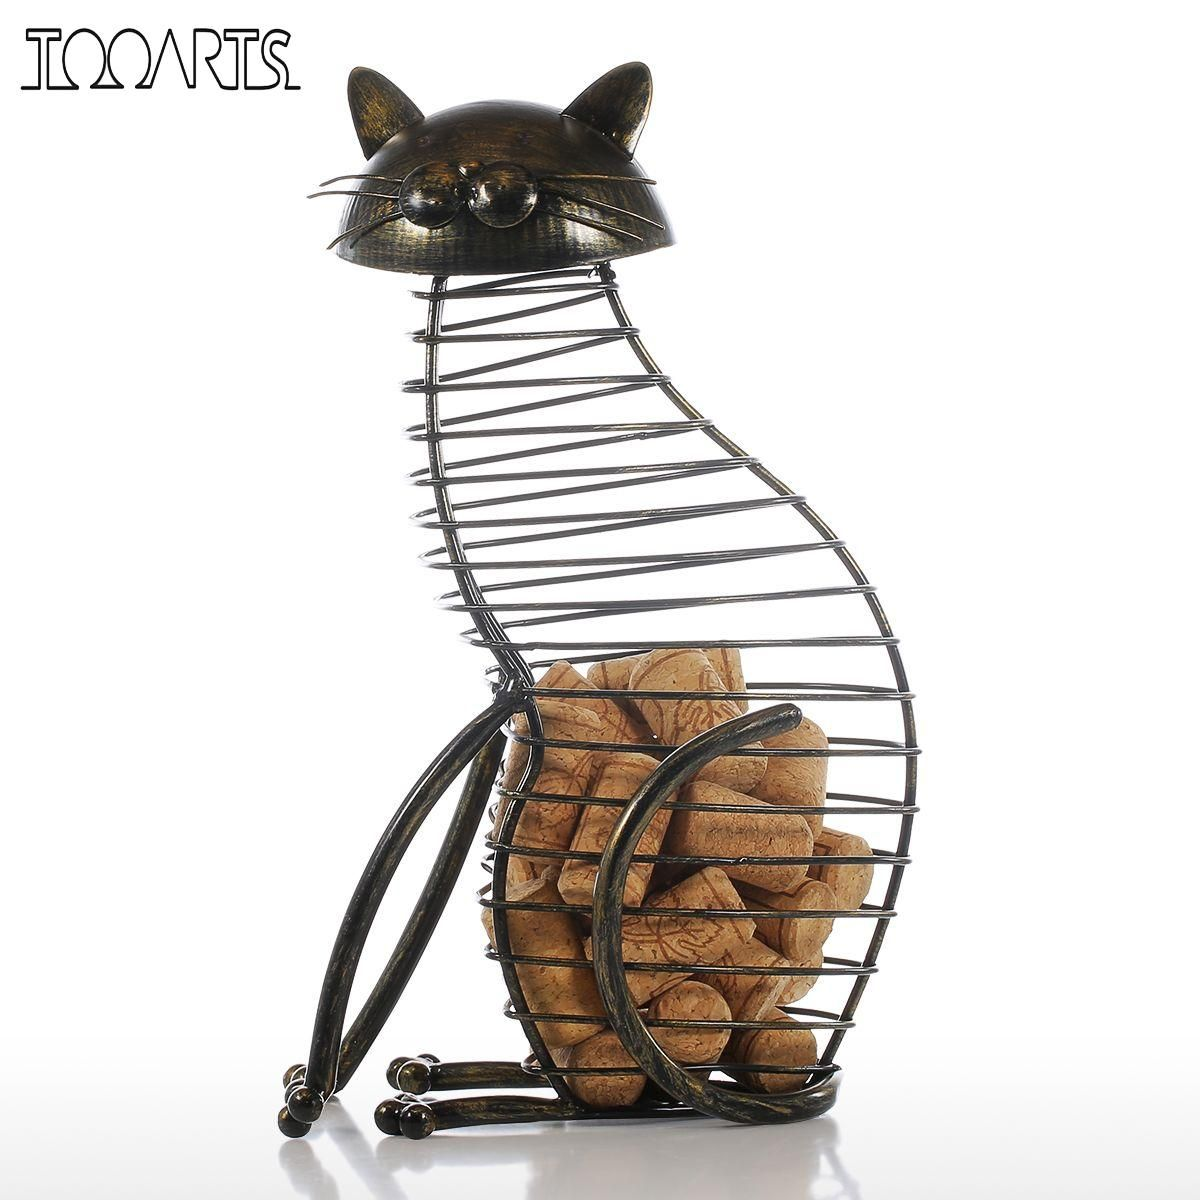 Tooarts Metal Cat Figurines Wine Cork Container Modern Style Iron Craft Gift <font><b>Artificial</b></font> Animal Mini Home Decoration Accessories